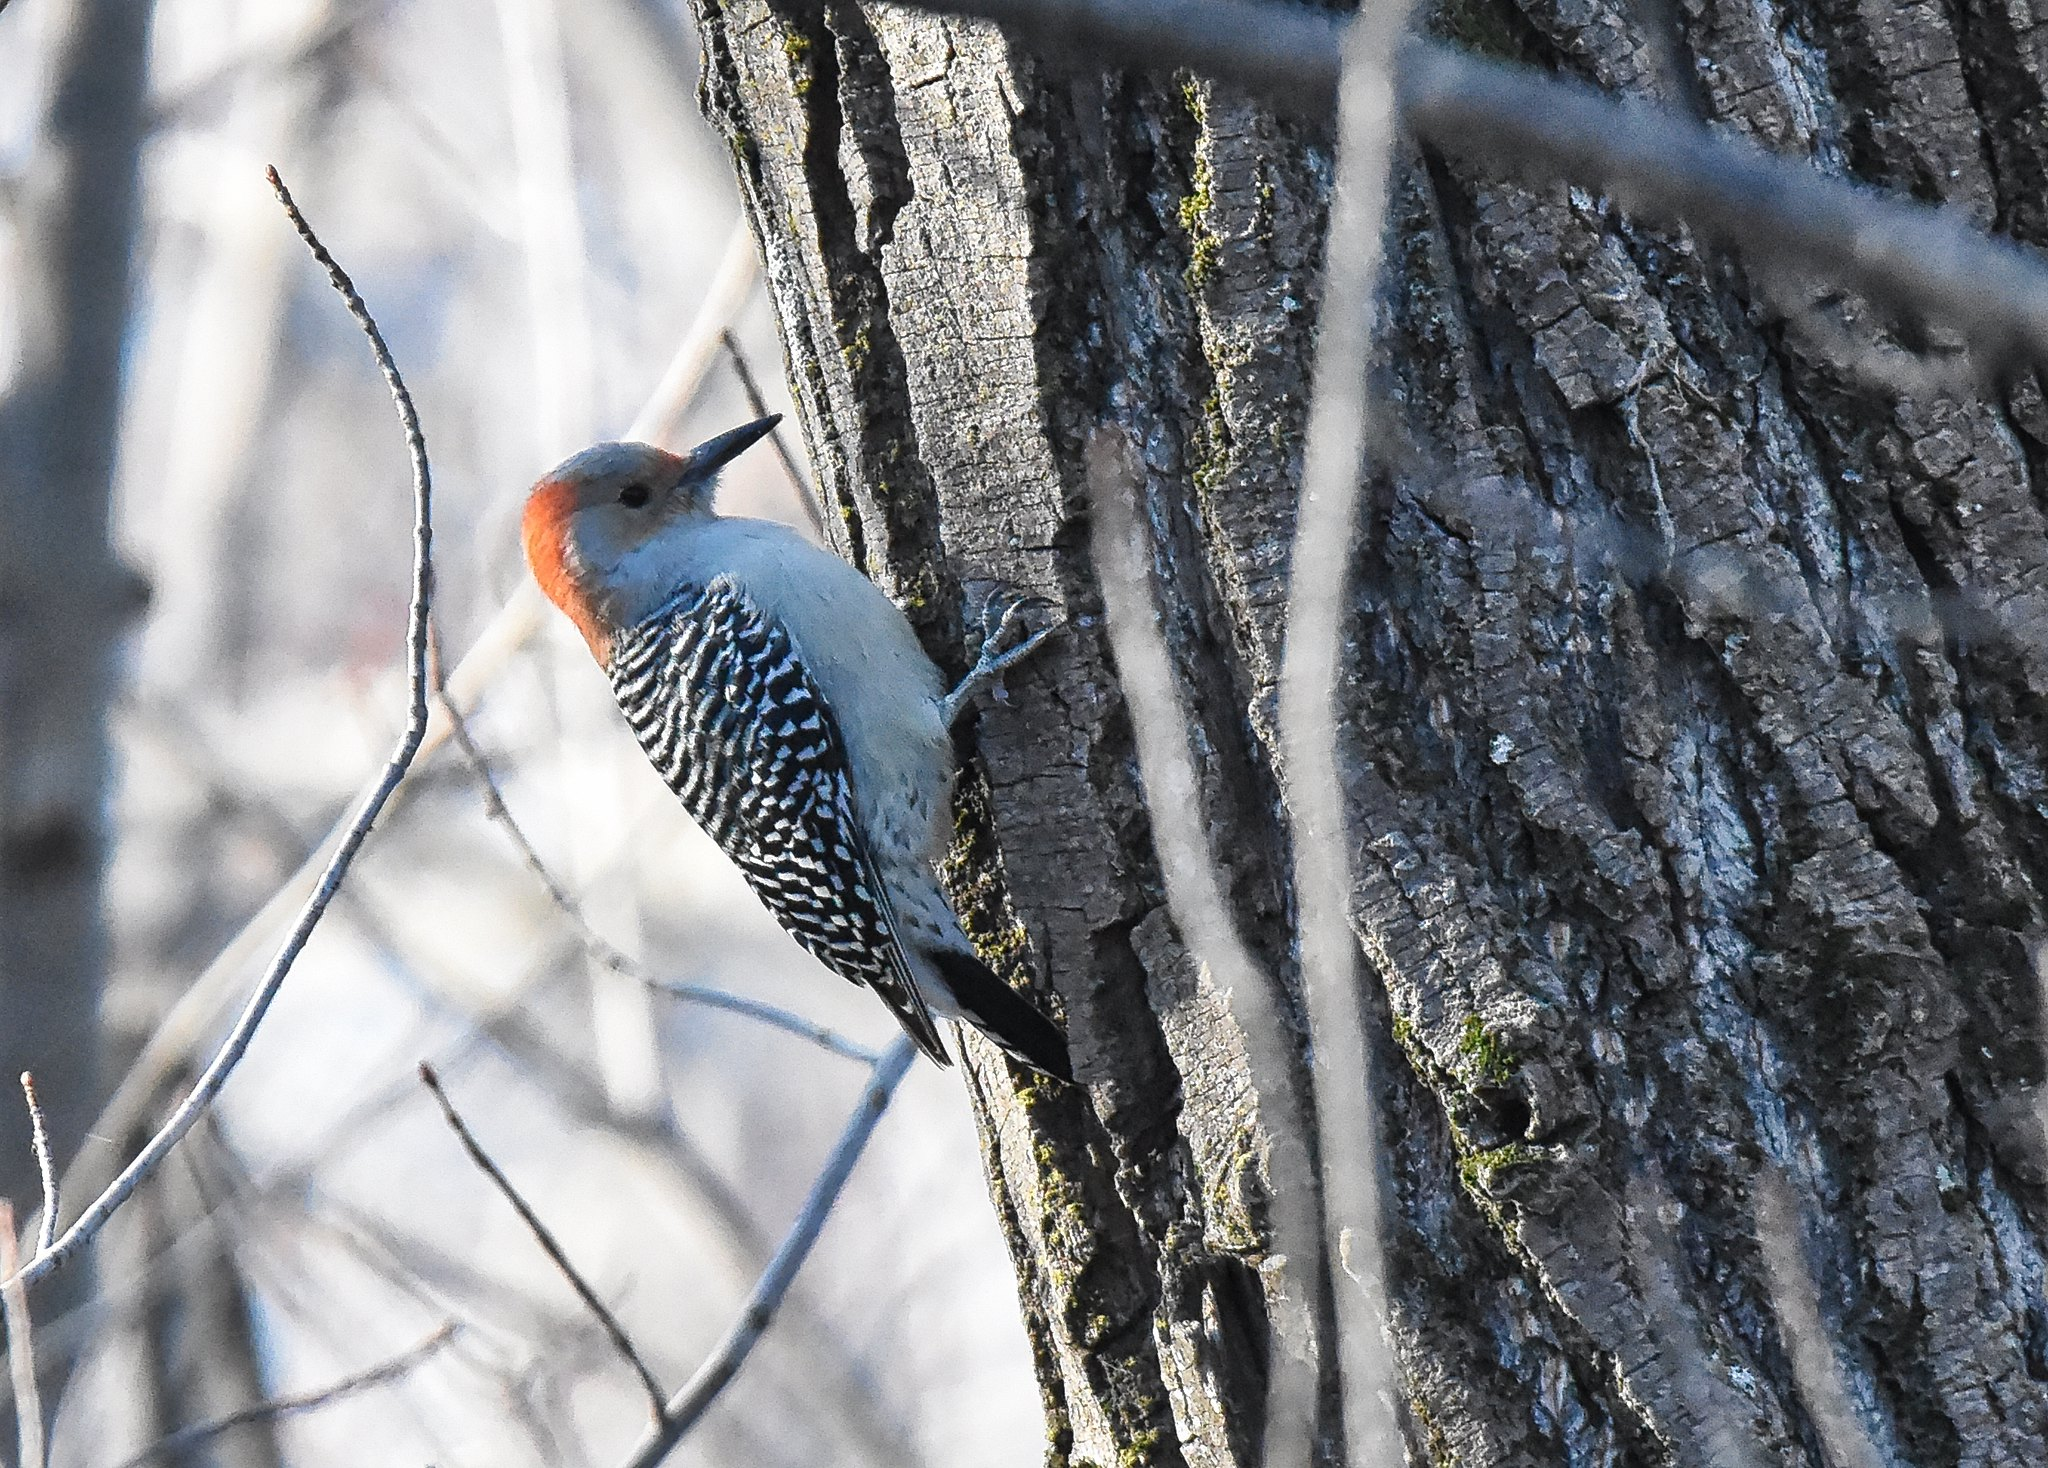 Red-bellied Woodpecker ♂ - Pic à ventre roux ♂ - Melanerpes carolinus (D72_7169-Ladb-20171115)